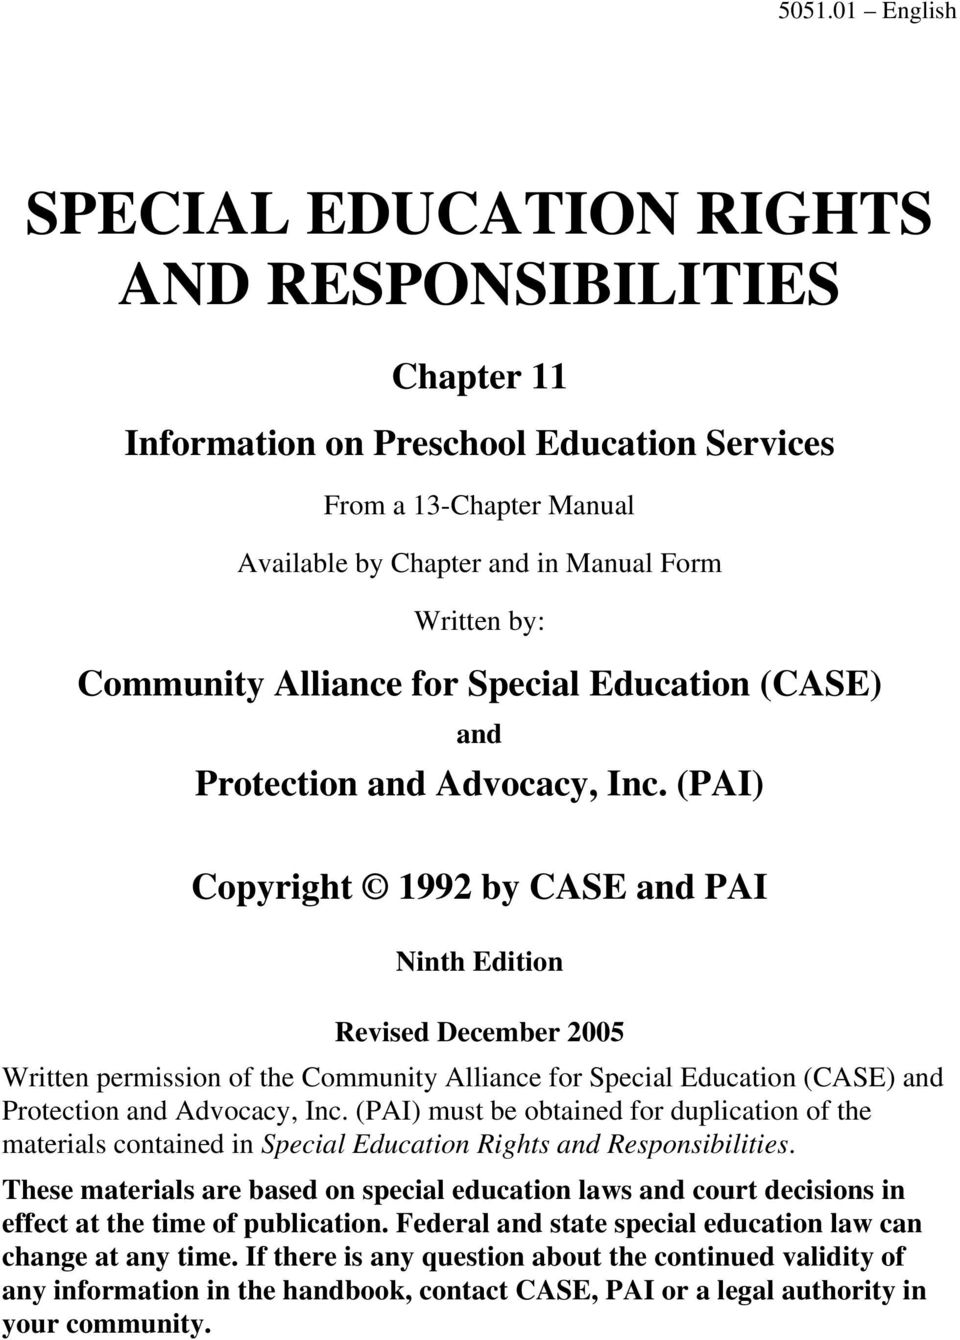 (PAI) Copyright 1992 by CASE and PAI Ninth Edition Revised December 2005 Written permission of the  (PAI) must be obtained for duplication of the materials contained in Special Education Rights and